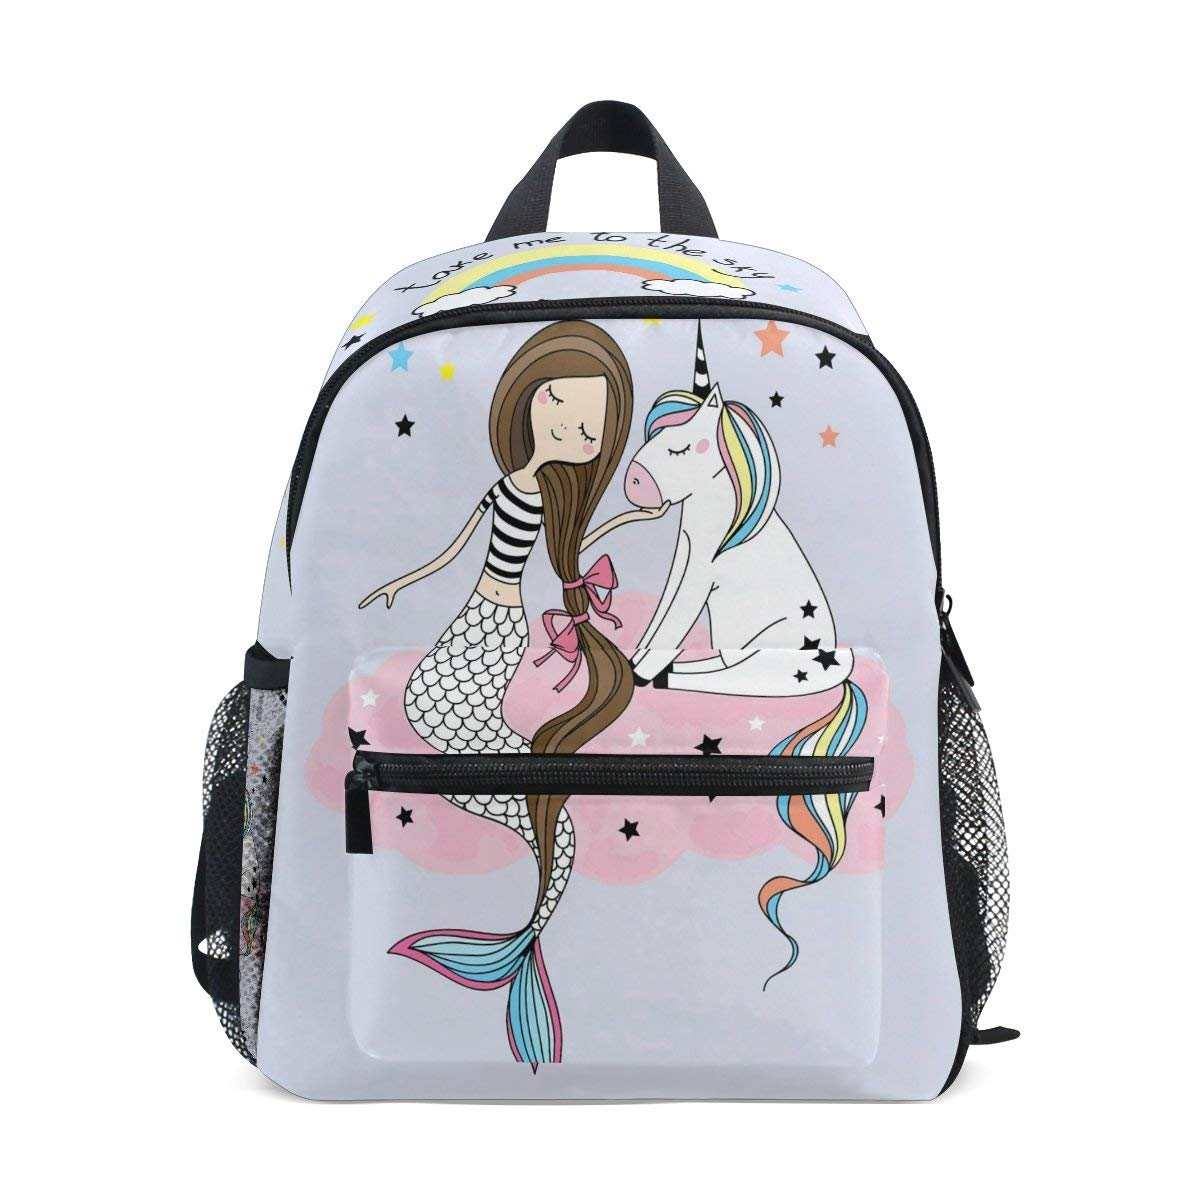 9a9ead5a0752 Get Quotations · ZZKKO Mermaid Girl Unicorn Kids Backpack School Book Bag  for Toddler ...